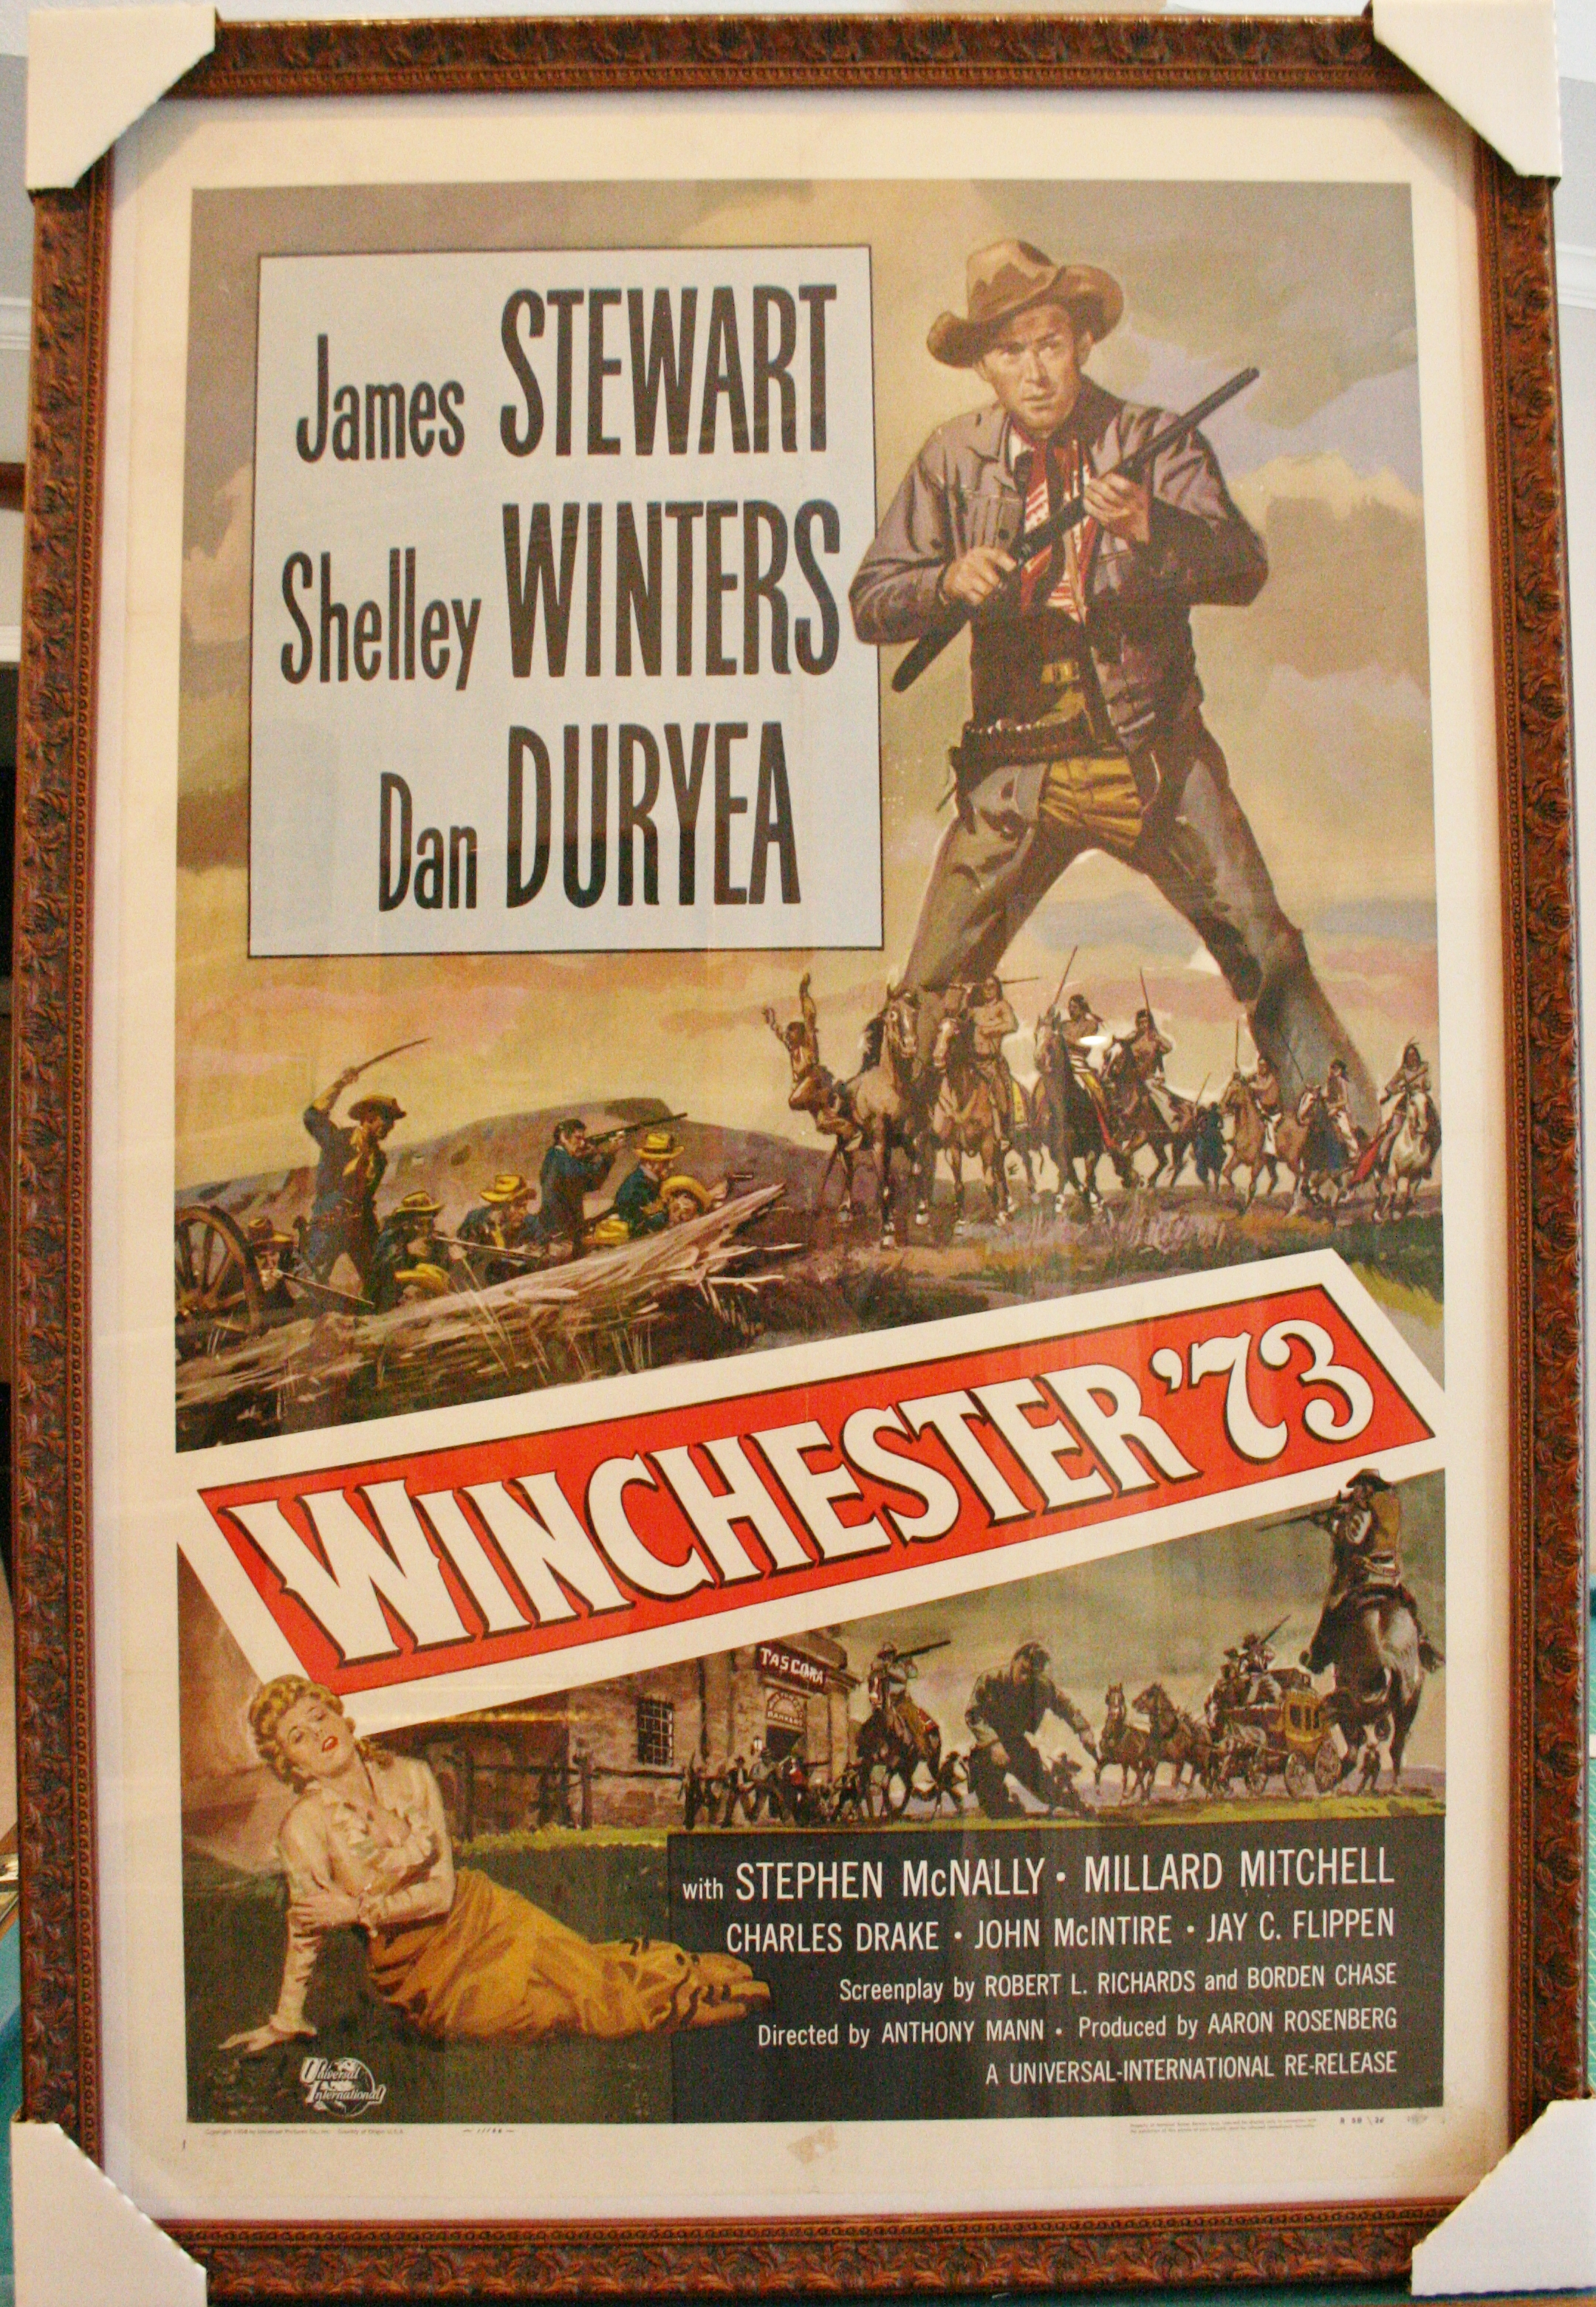 Framing Posters: some examples of framed vintage posters